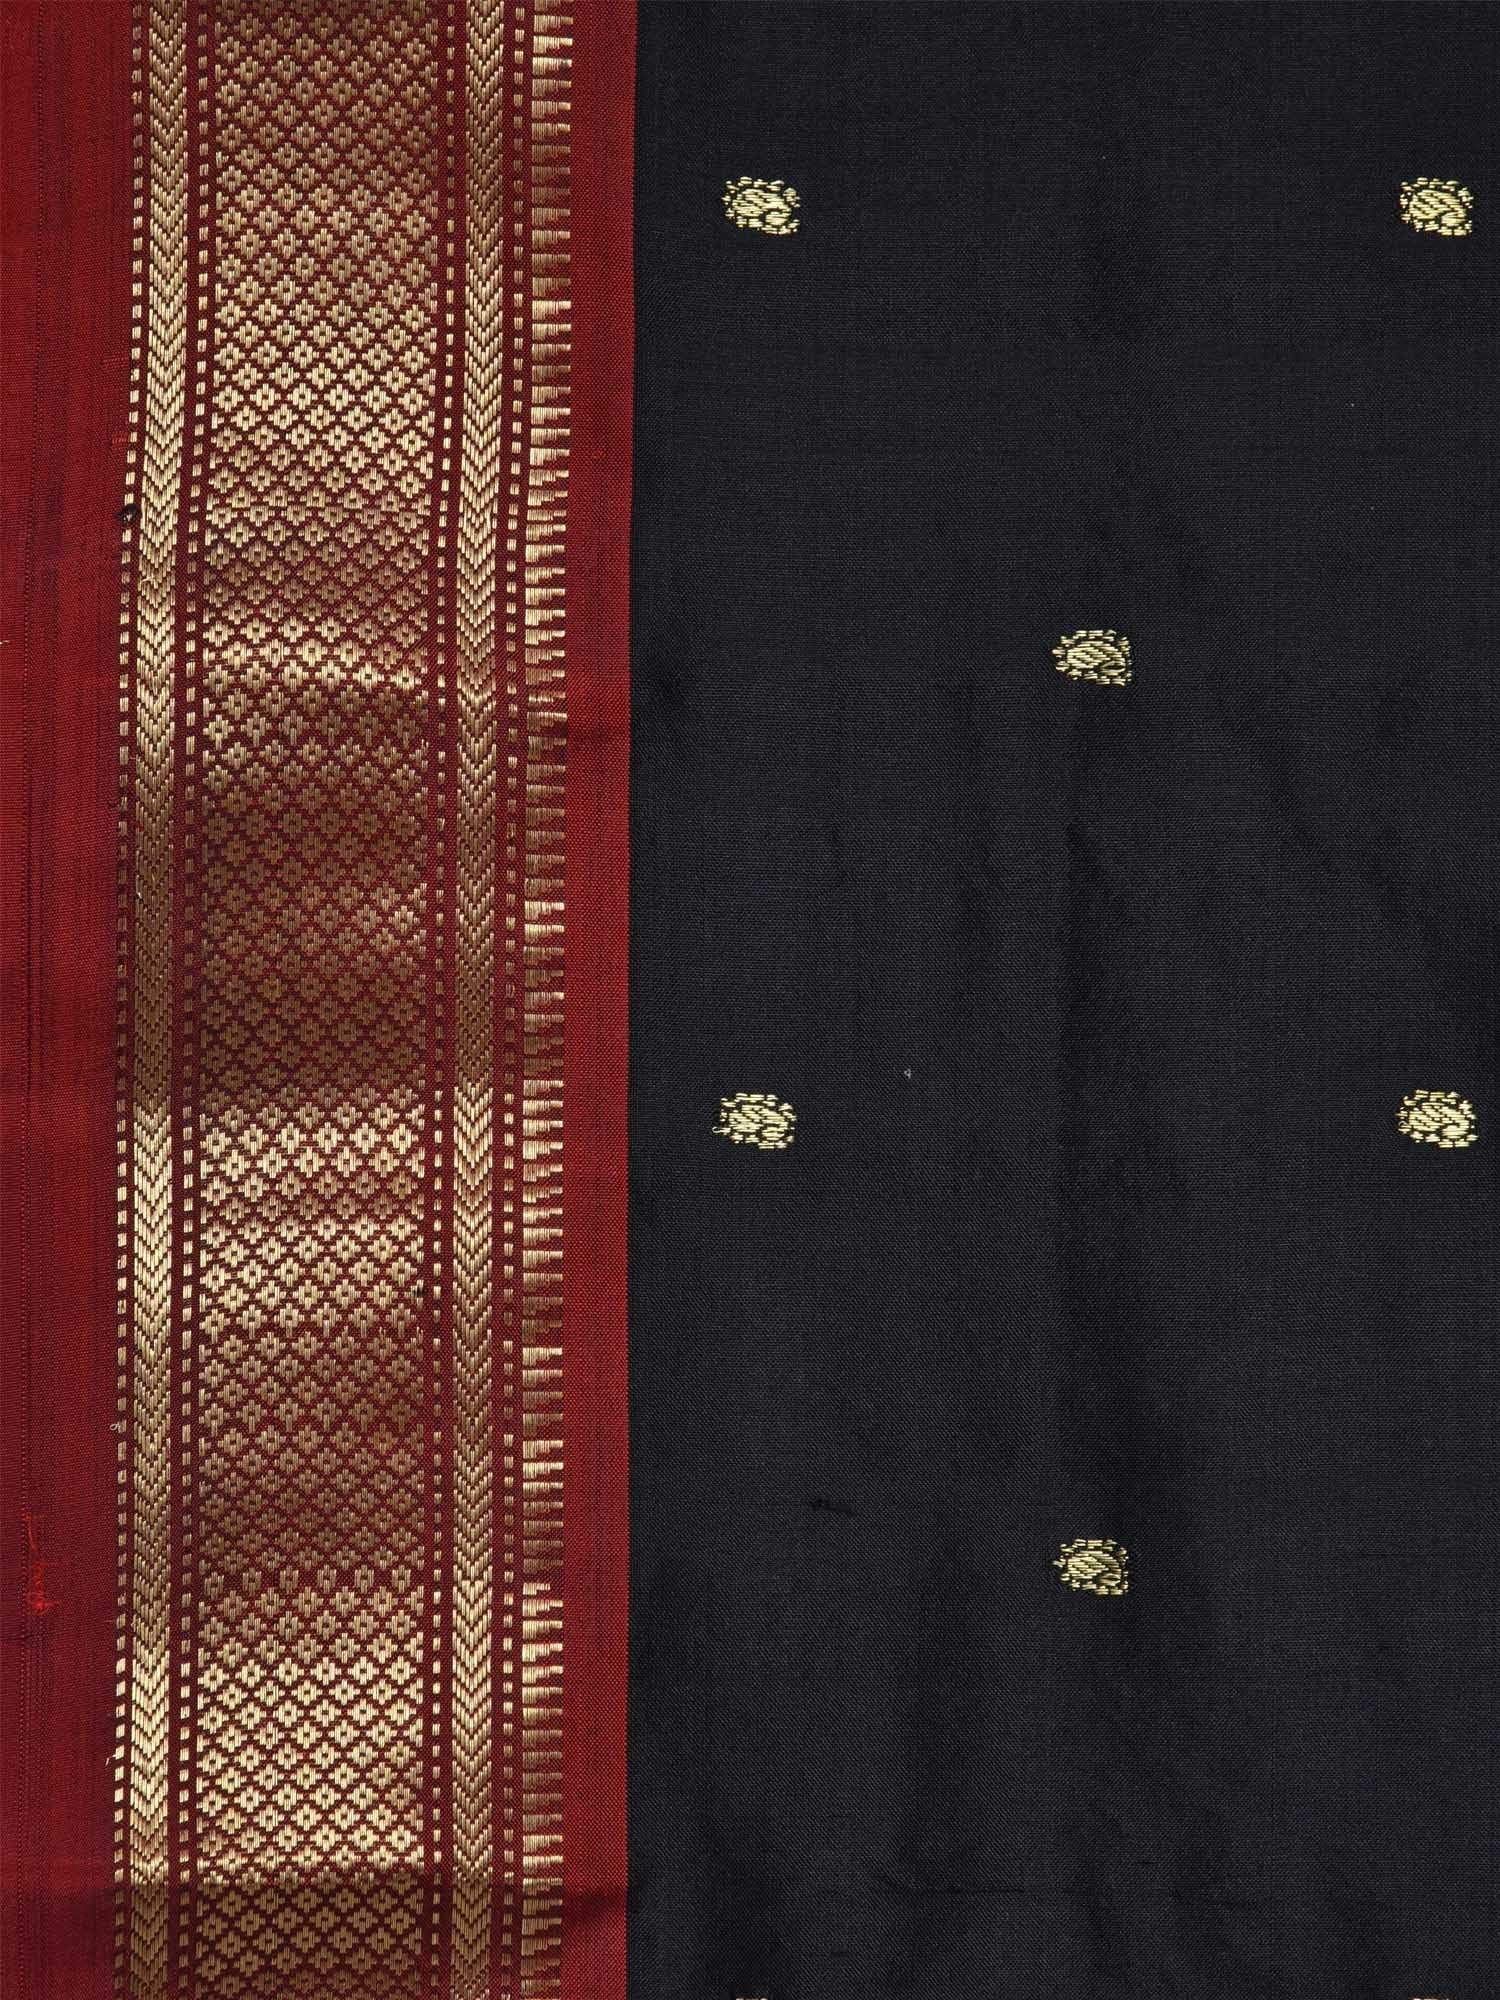 Black Paithani Silk Handloom Saree with Double Pallu Design p0291